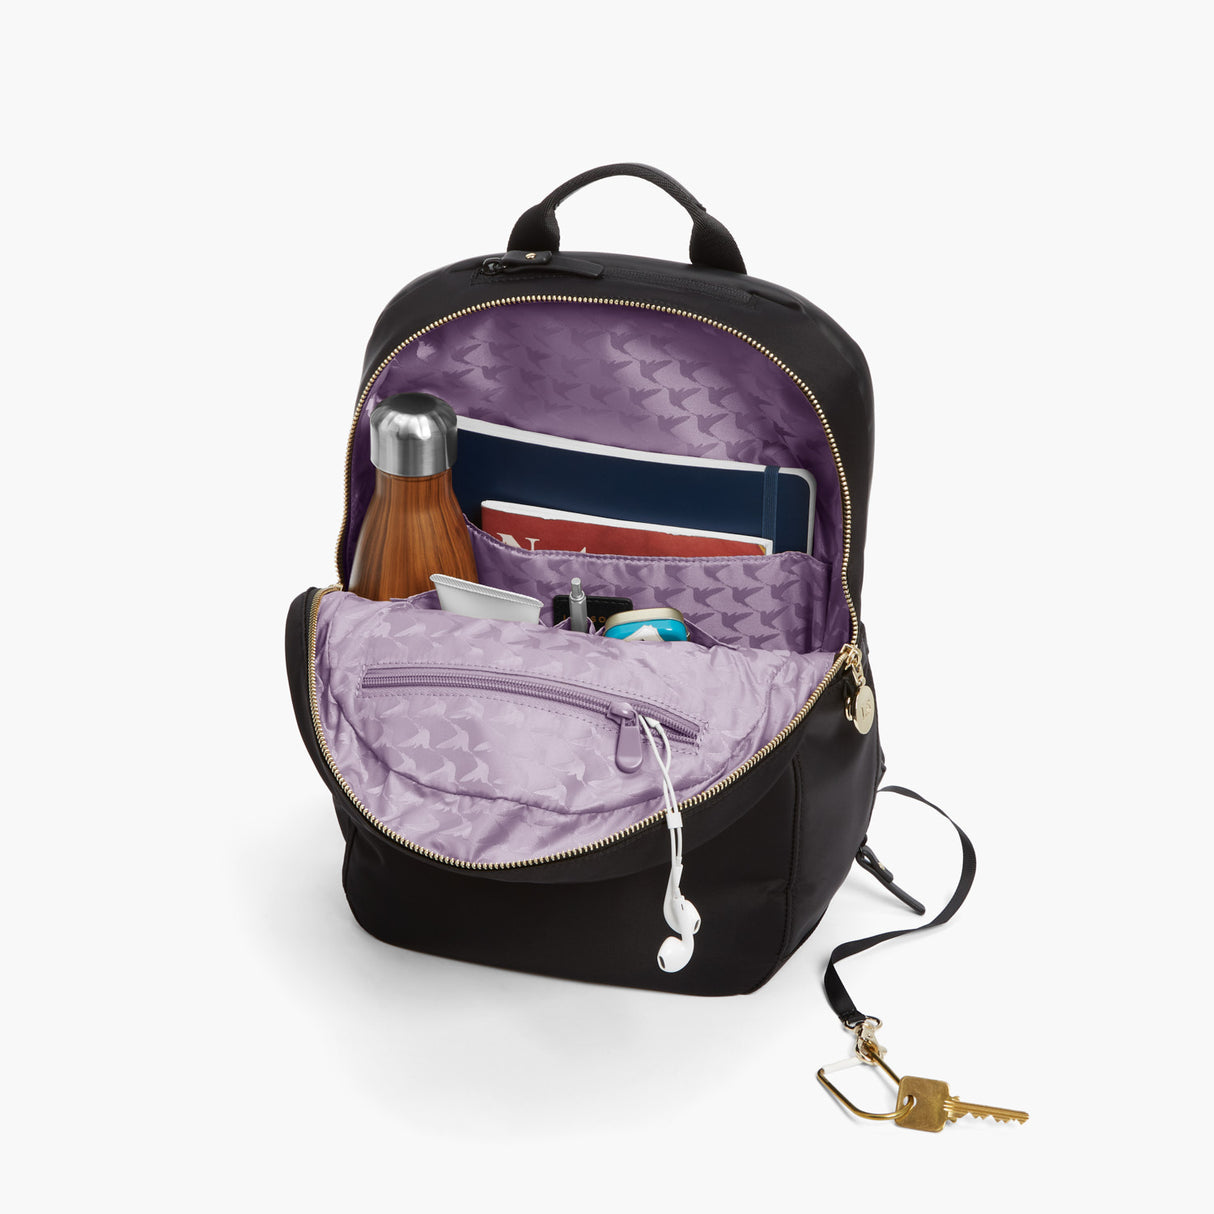 All The Details - Beacon - Nylon - Black / Gold / Lavender - Backpack - Lo & Sons